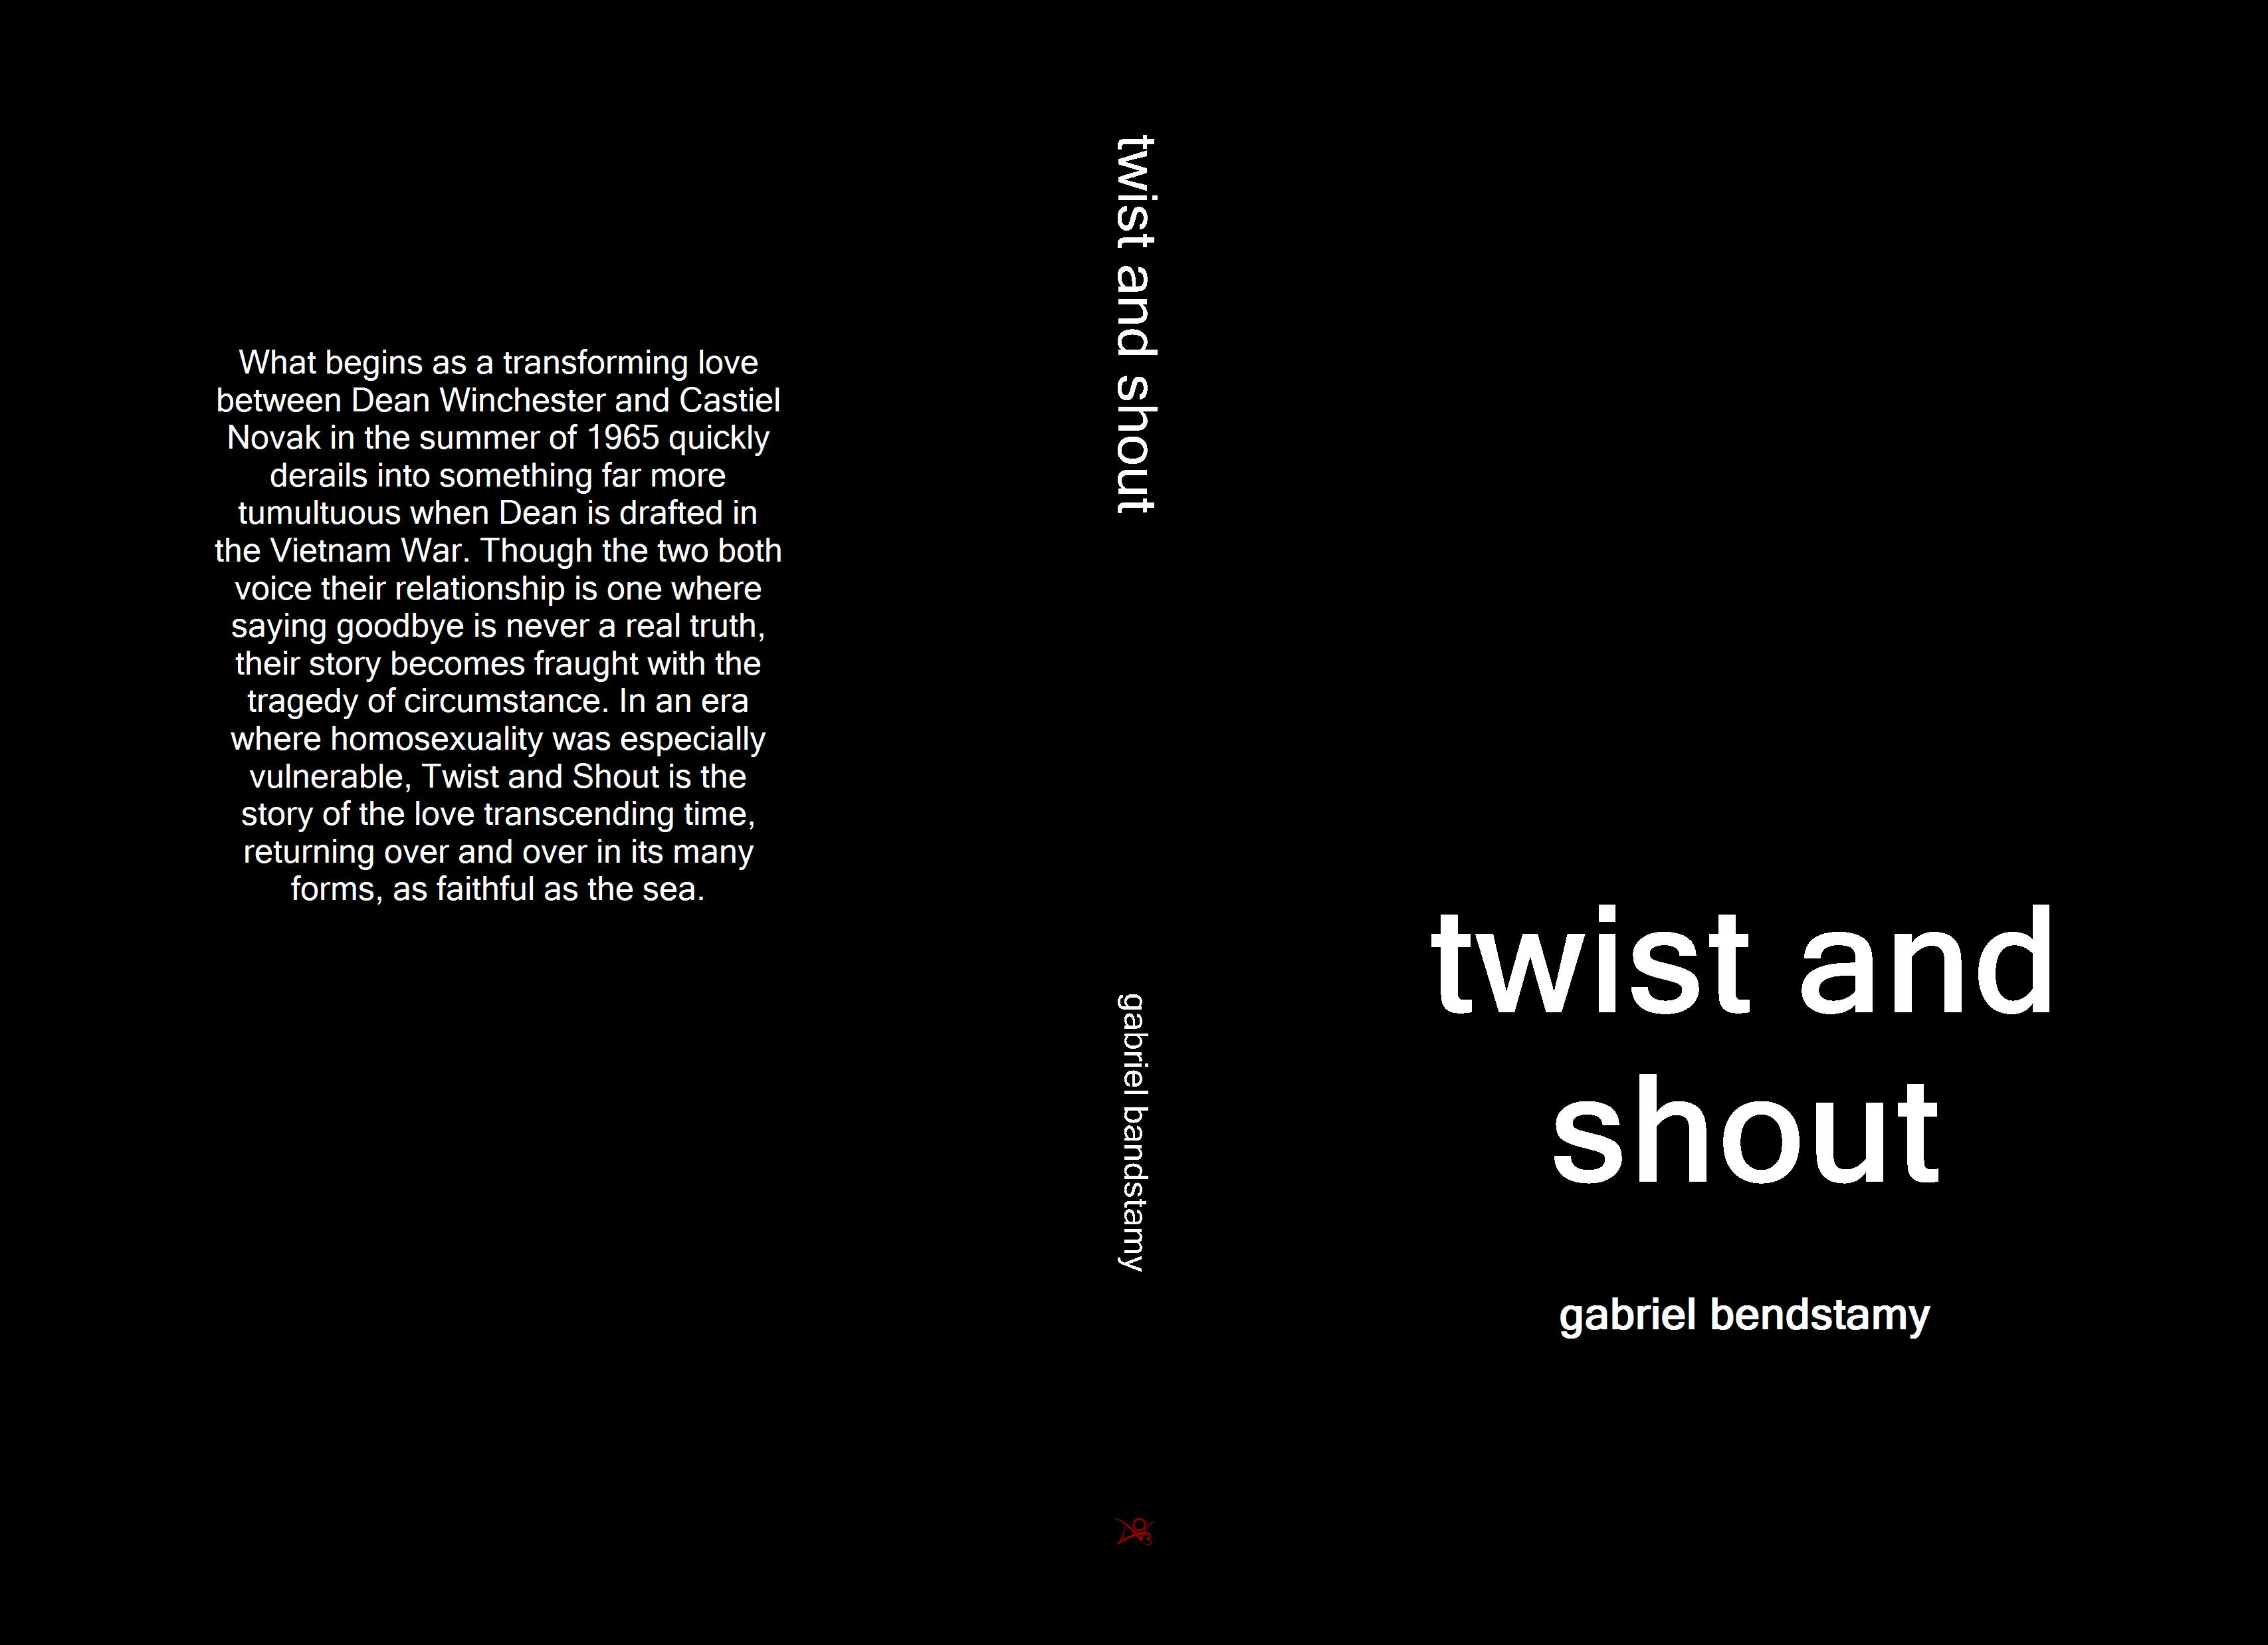 twist and shout cover image